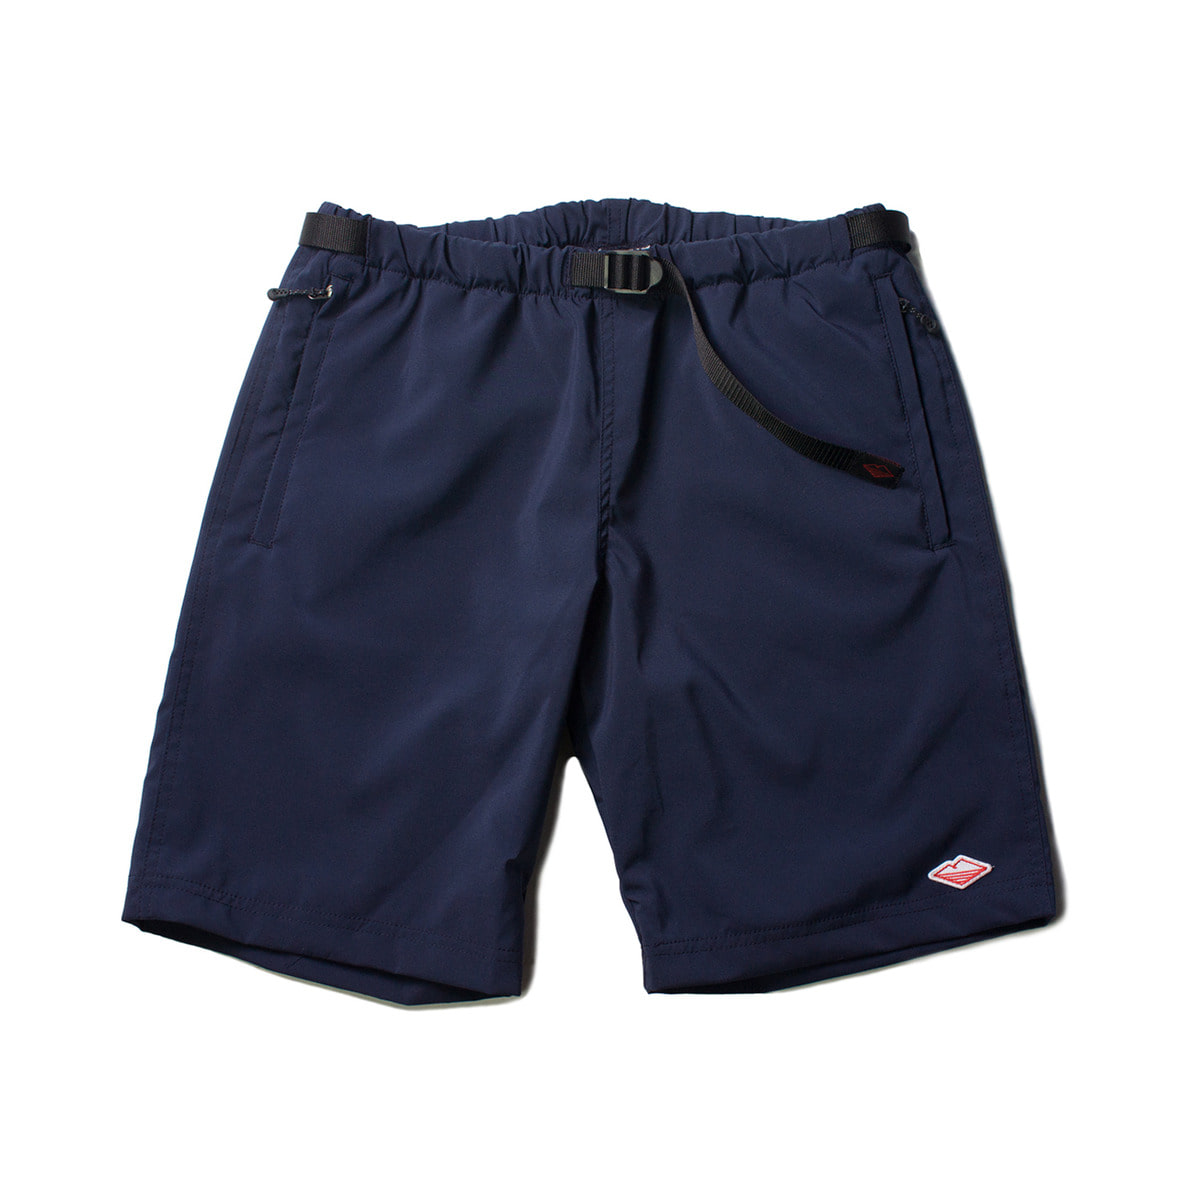 [BATTENWEAR] STRETCH CLIMBING SHORTS 'NAVY'